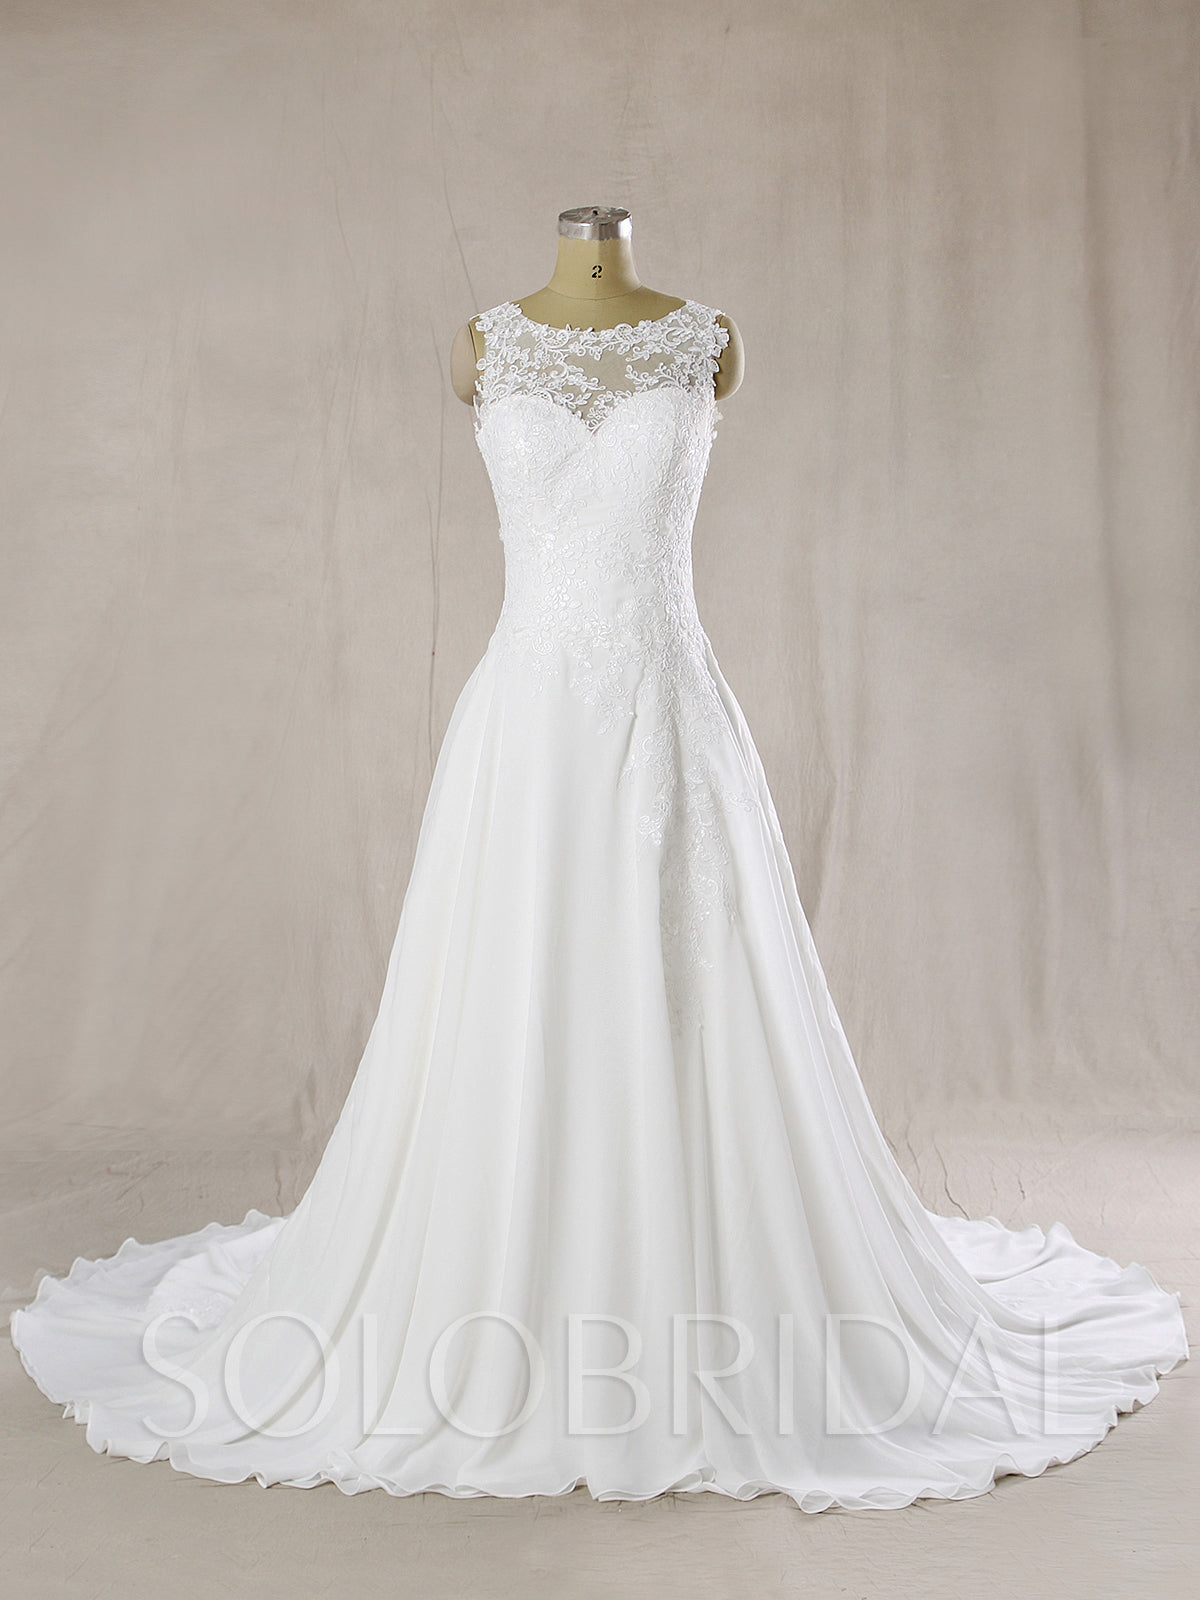 Chiffon Wedding Dress with Drop Waist